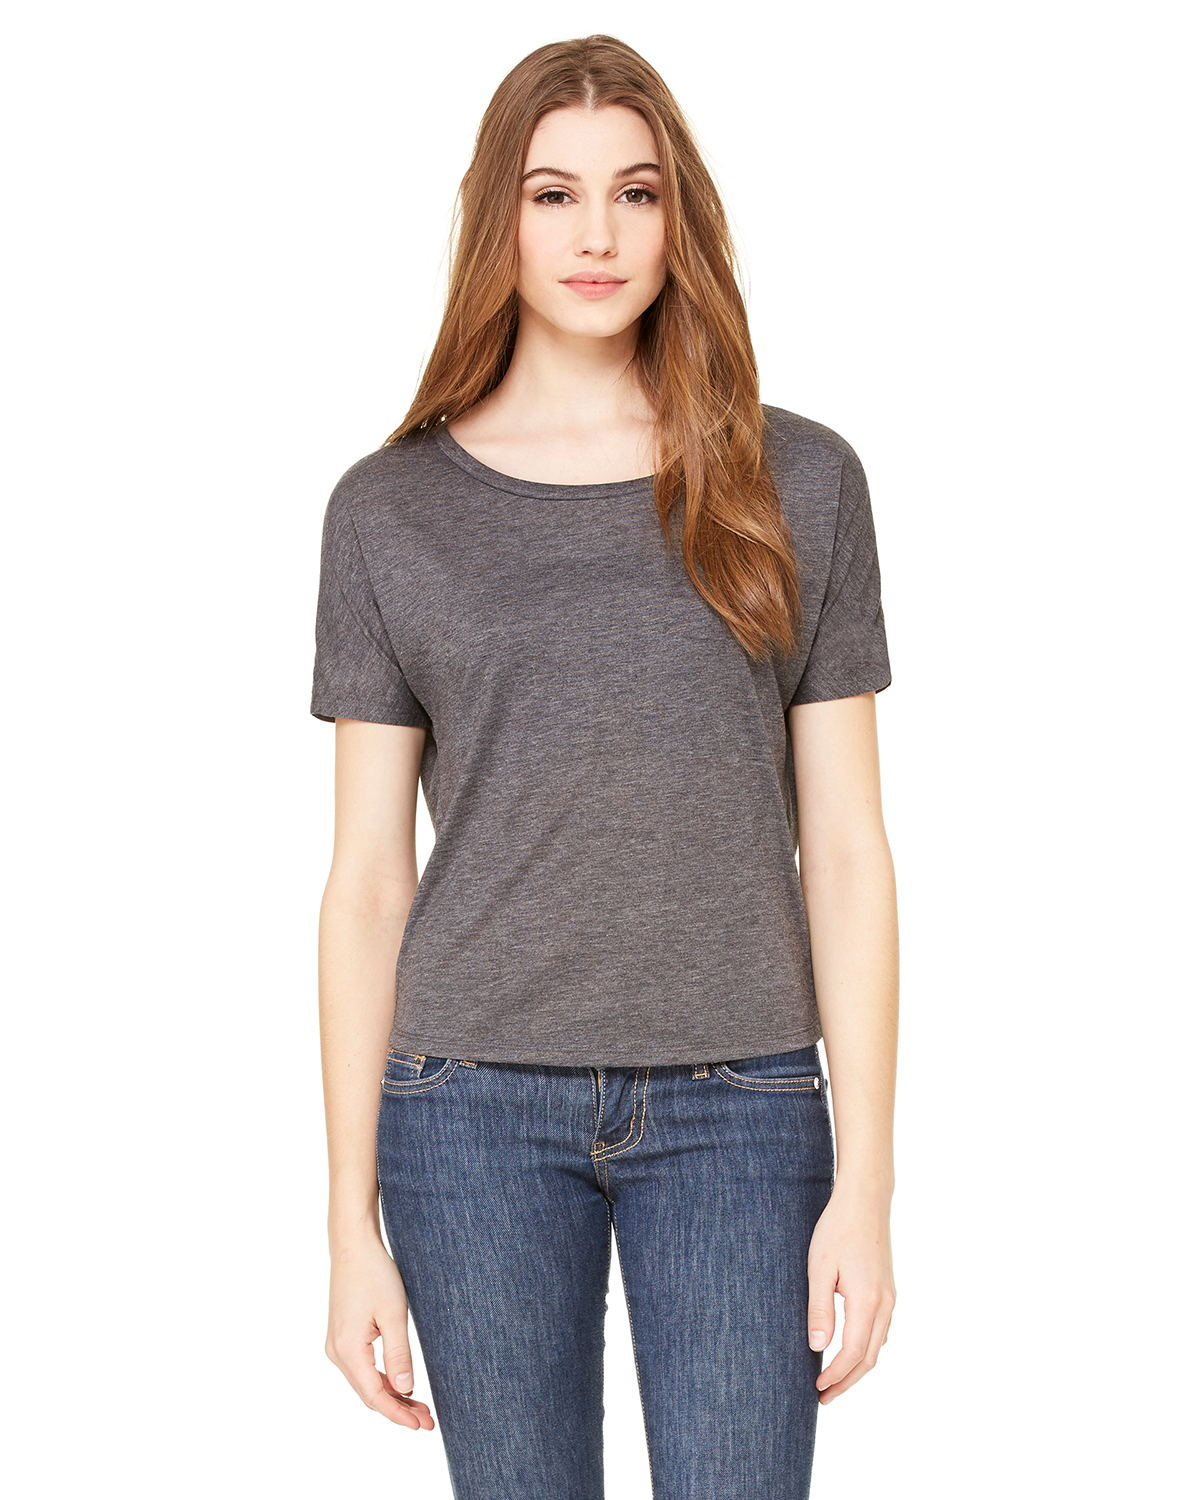 Bella + Canvas B8871 - Ladies' Flowy Open Back T-Shirt